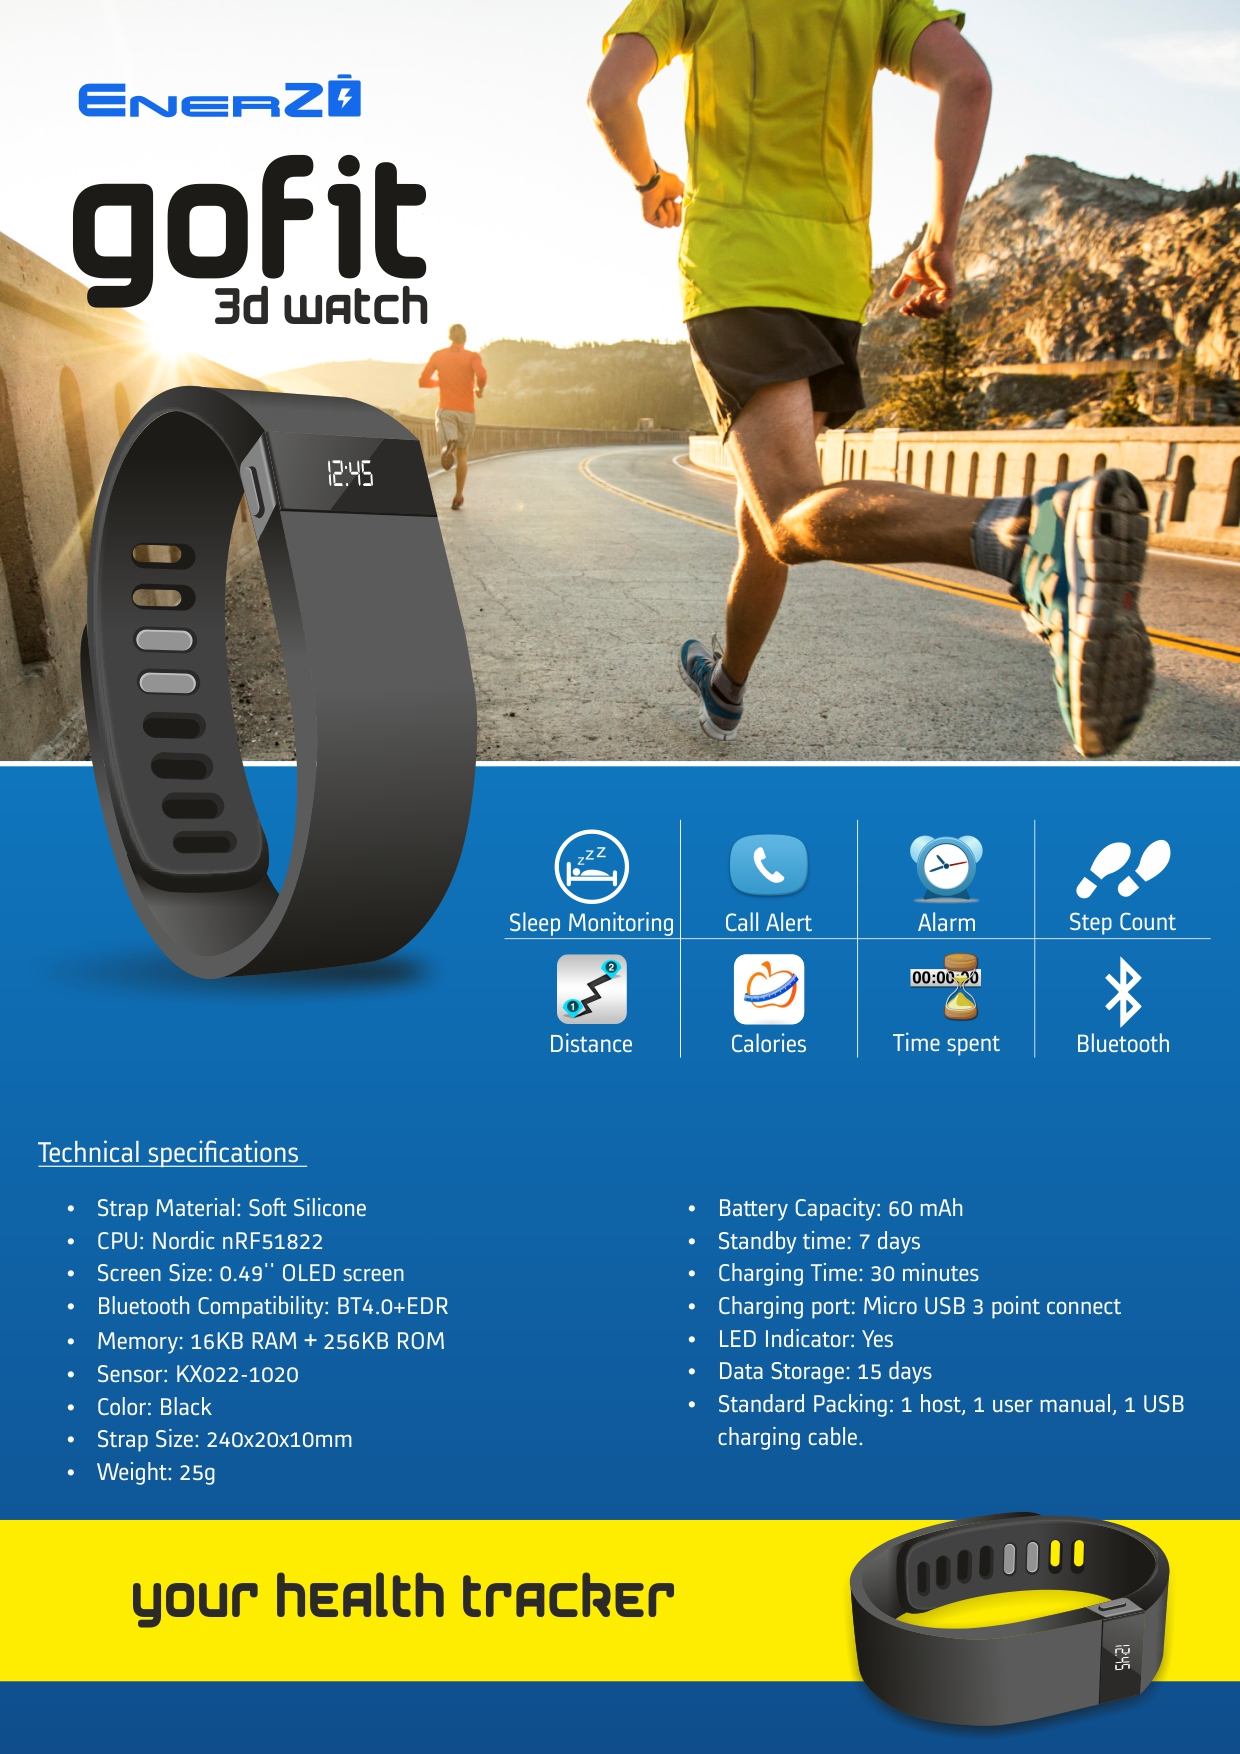 buy go fit 3d watch online in india - 81727344